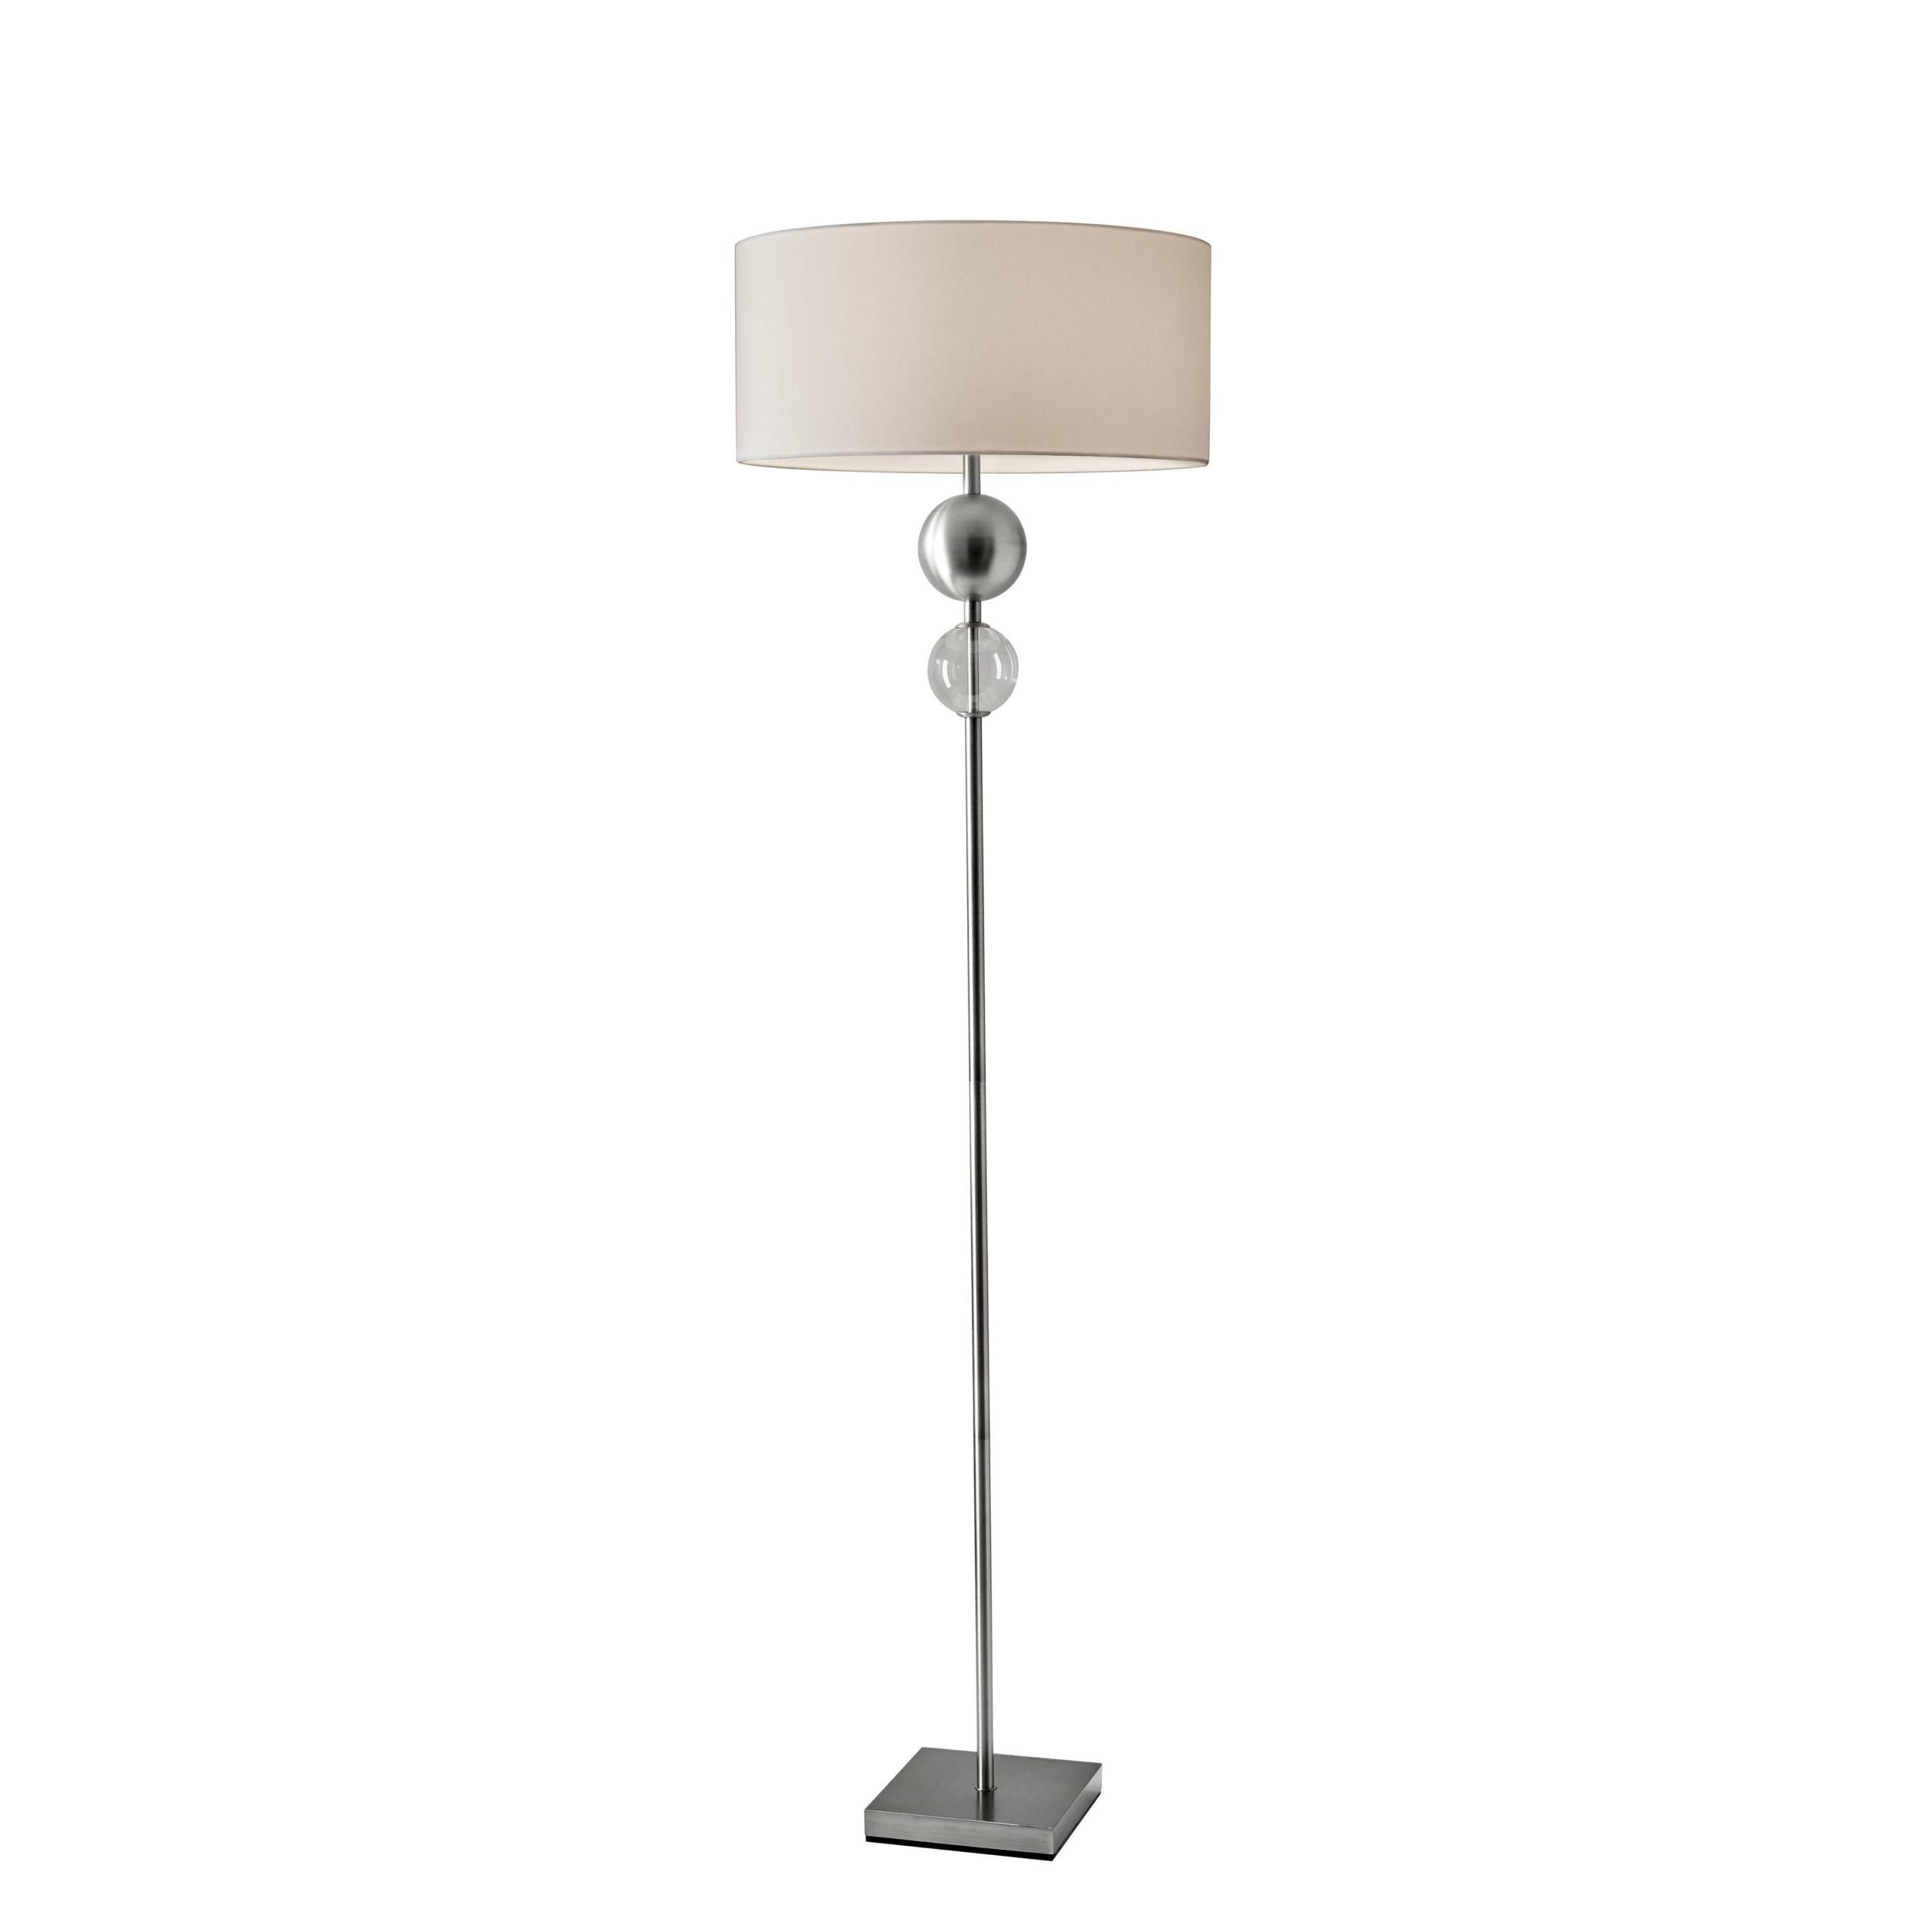 Chloe Floor Lamp 1